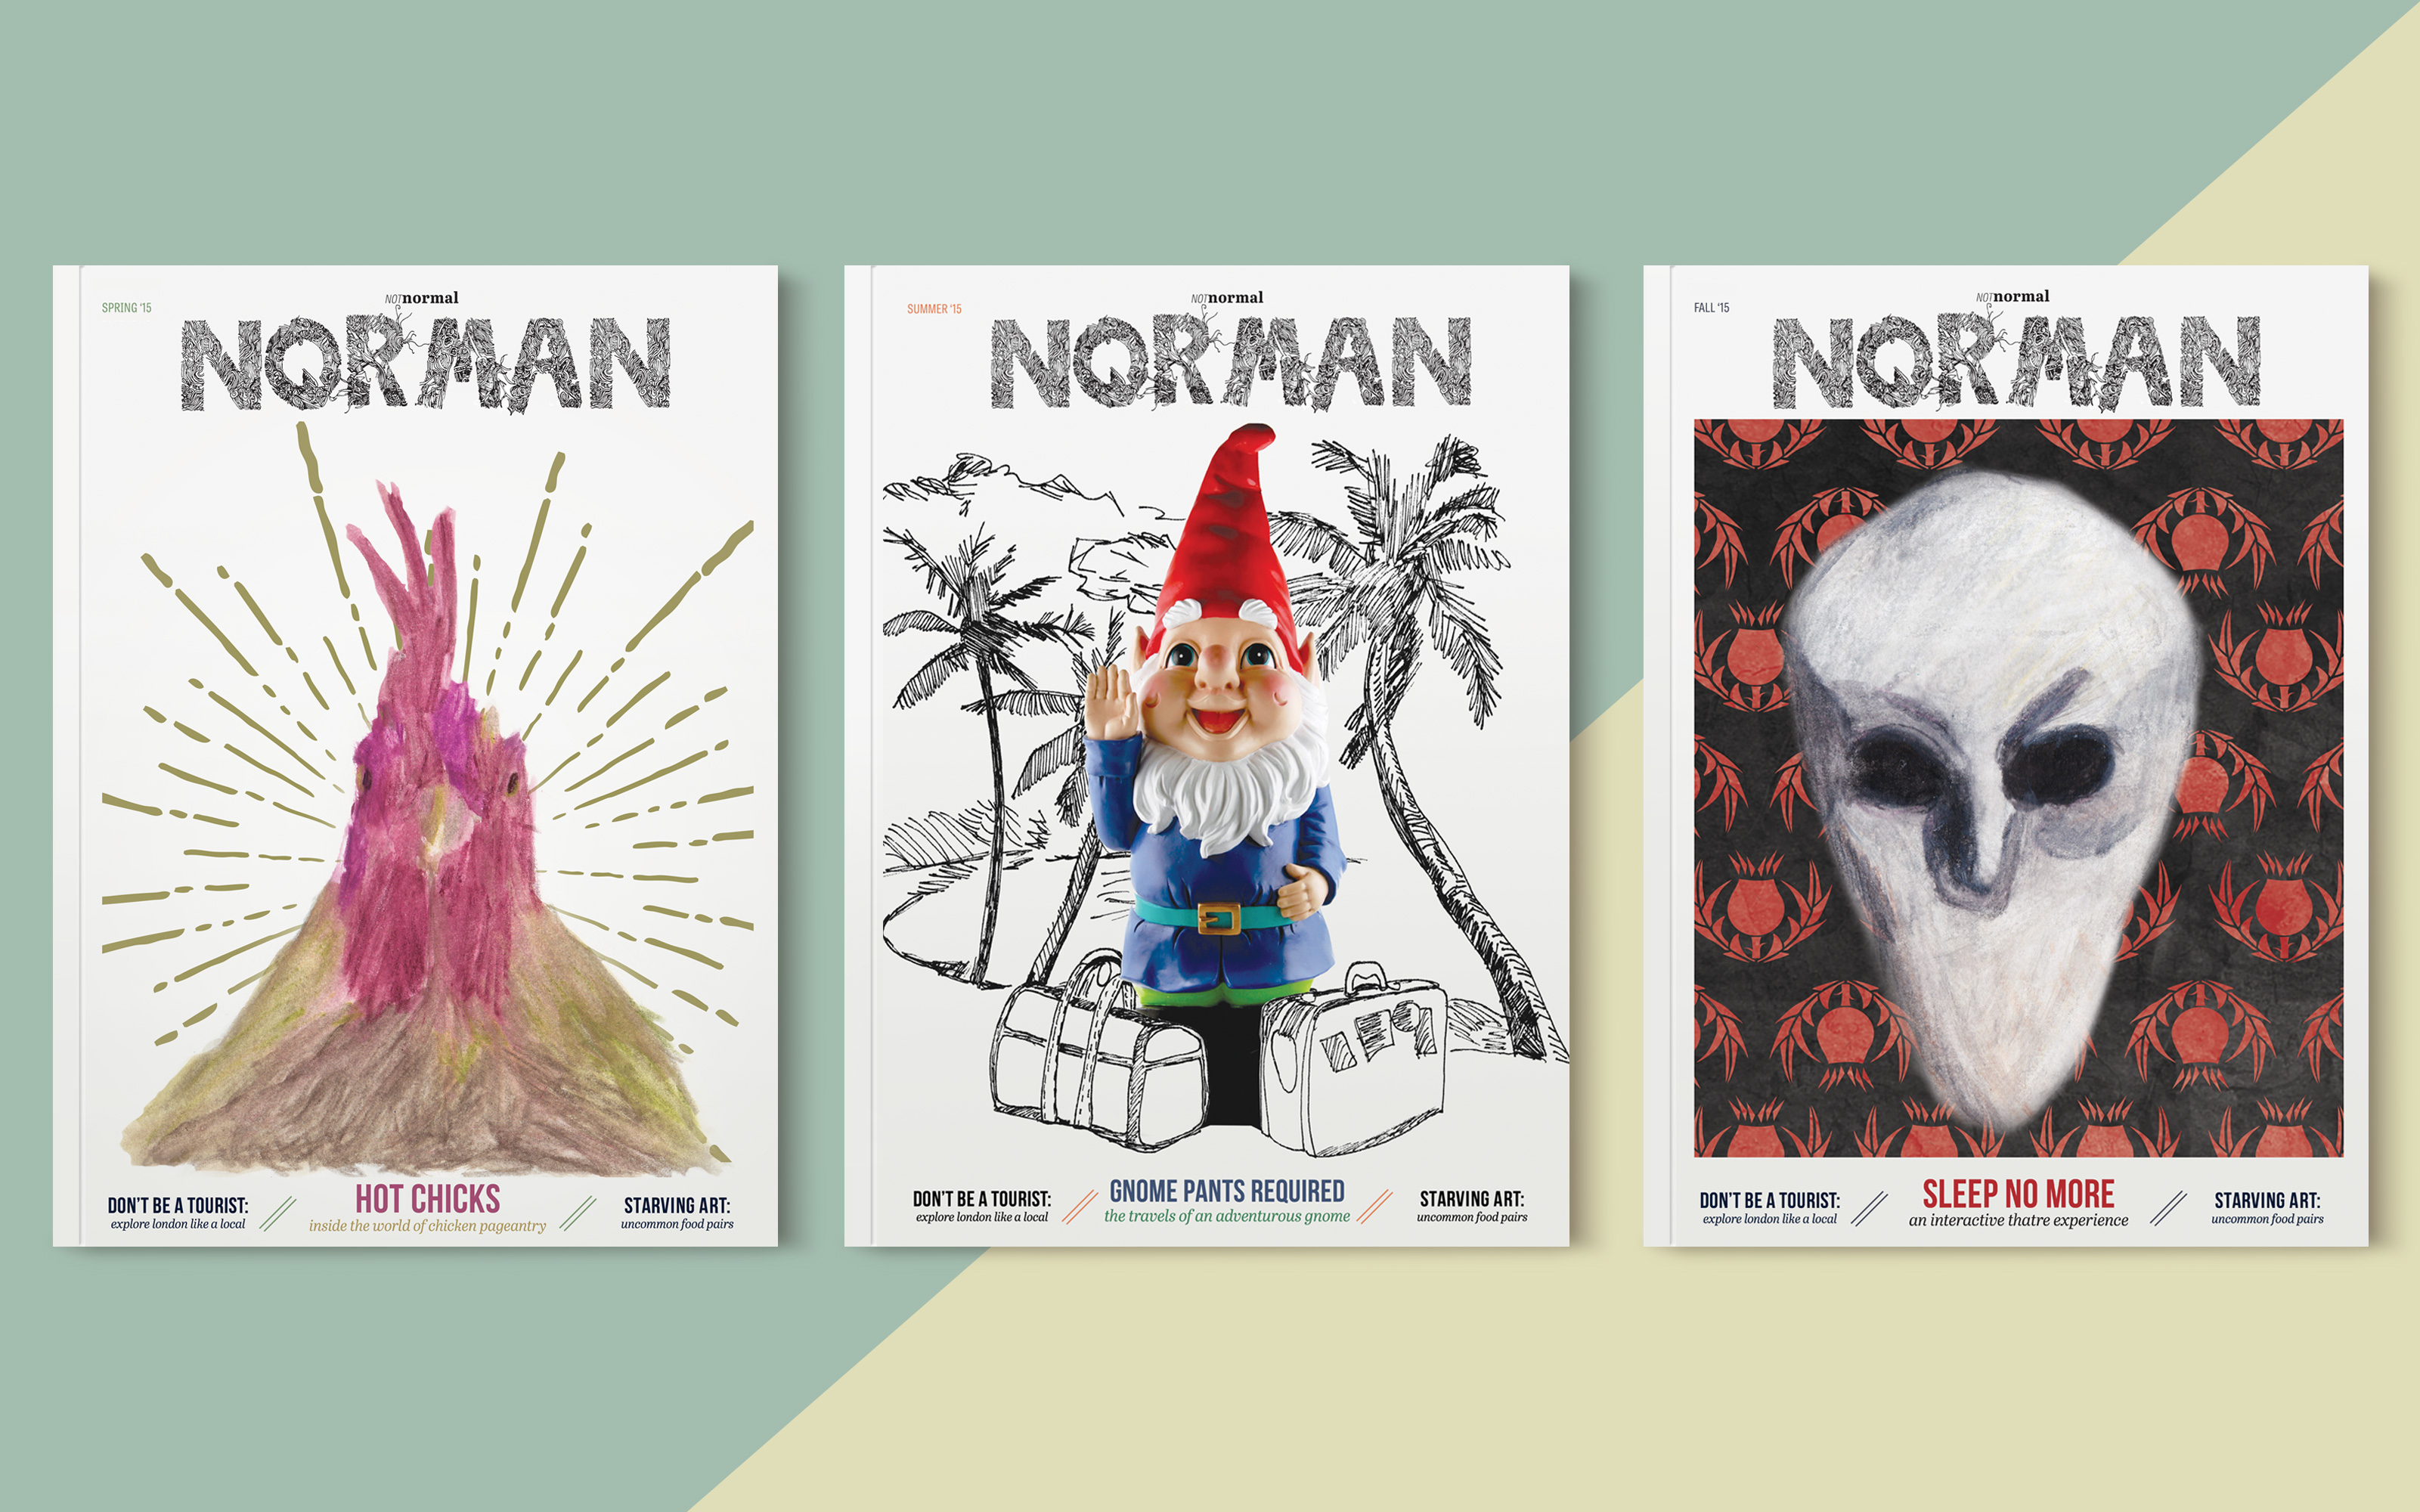 Norman_MagazineCovers_02